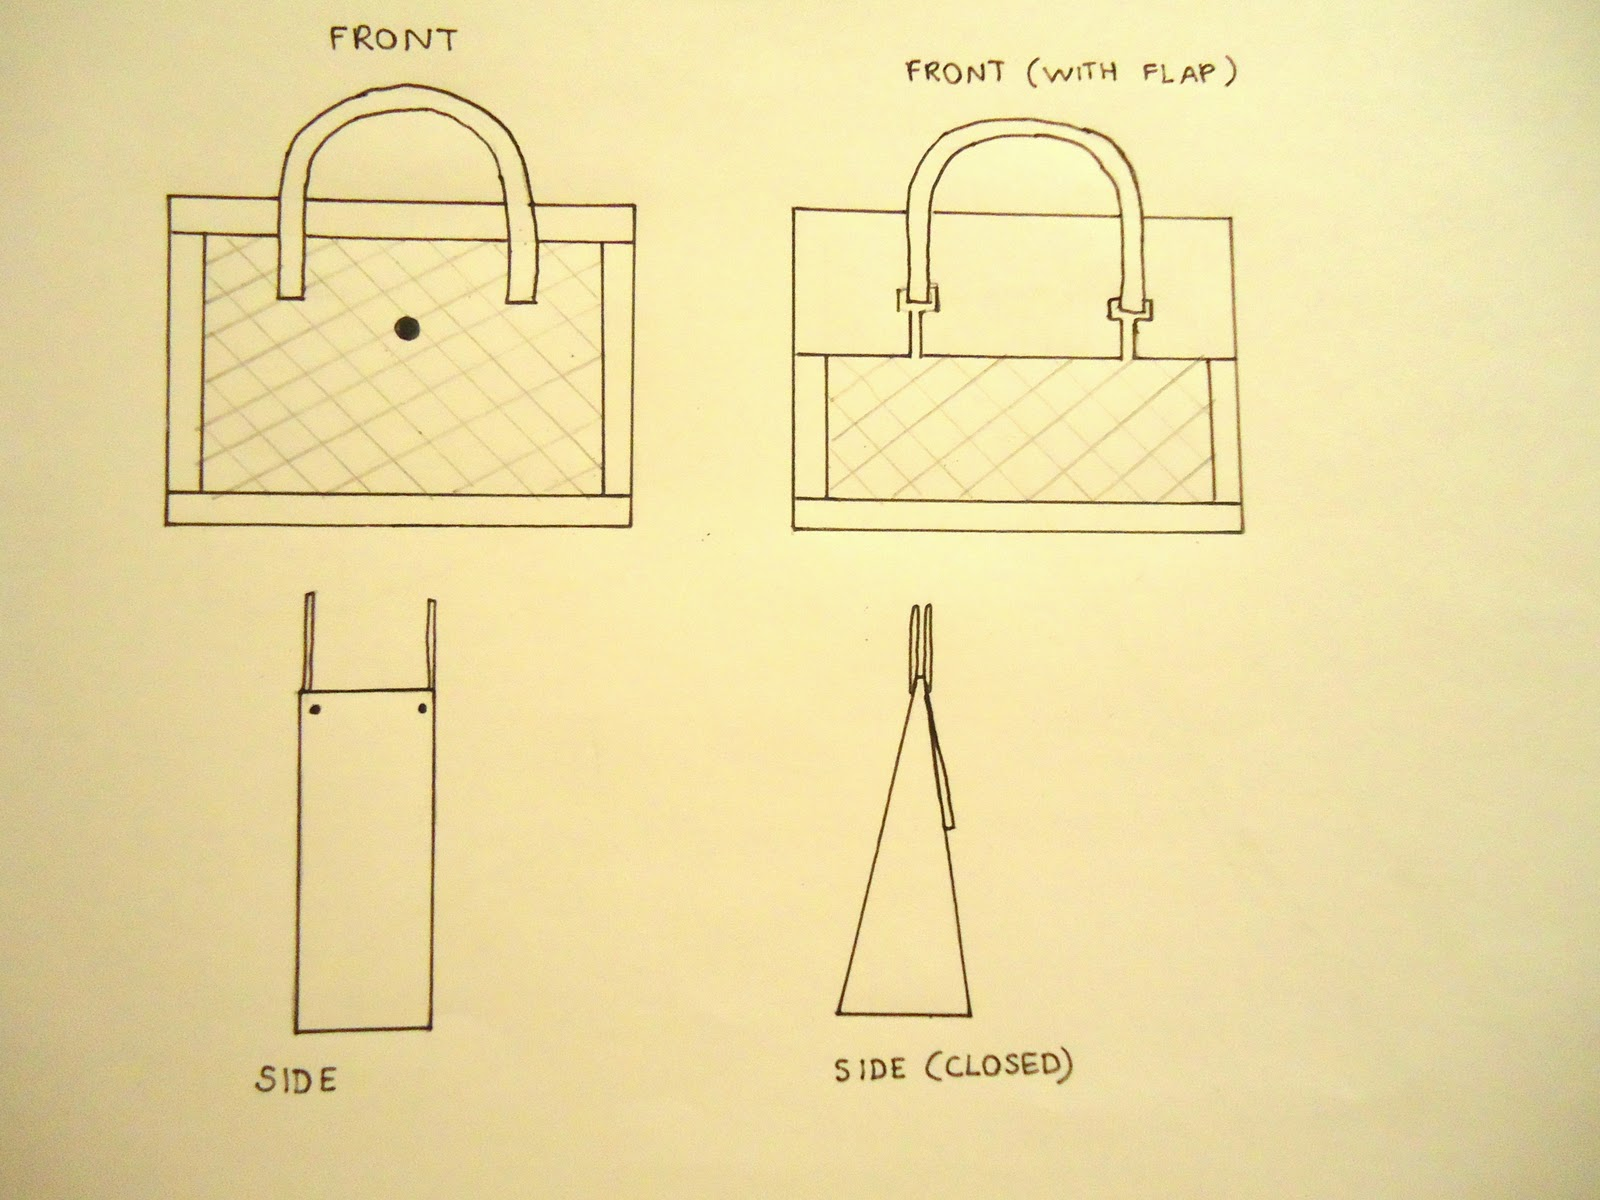 pursevalley replica - Bags you can make: November 2011